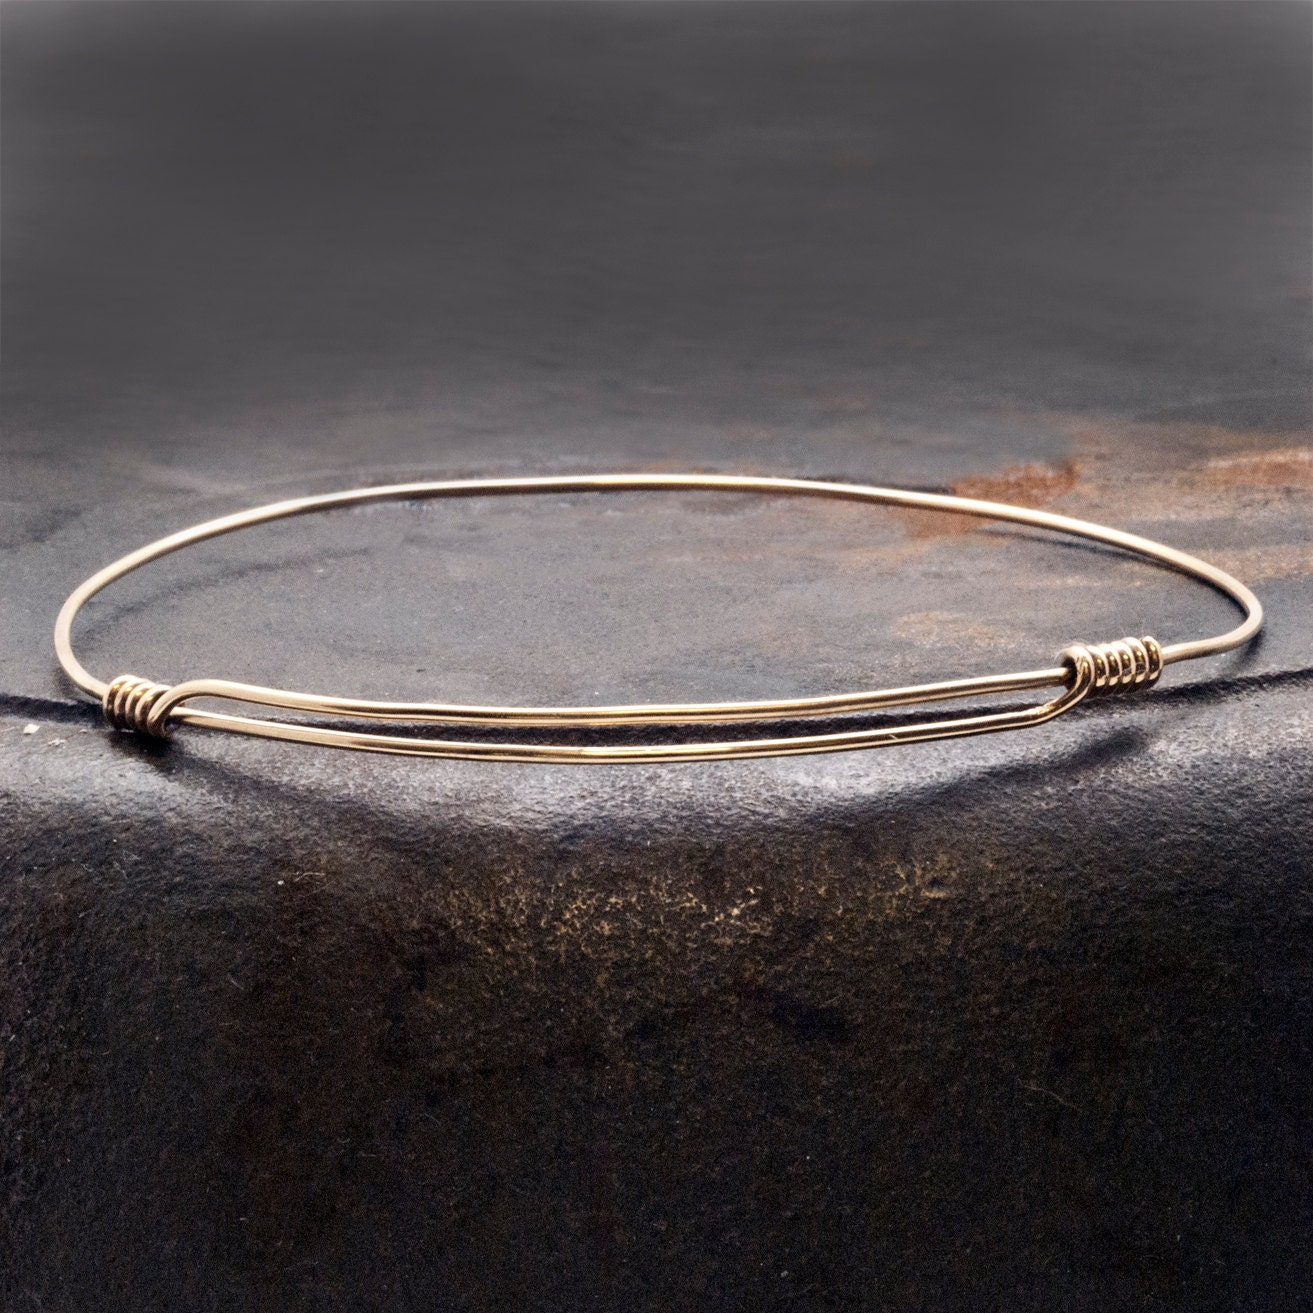 bracelet banglebracelets wolpe bangles neta with circles bracelets gold bangle solid